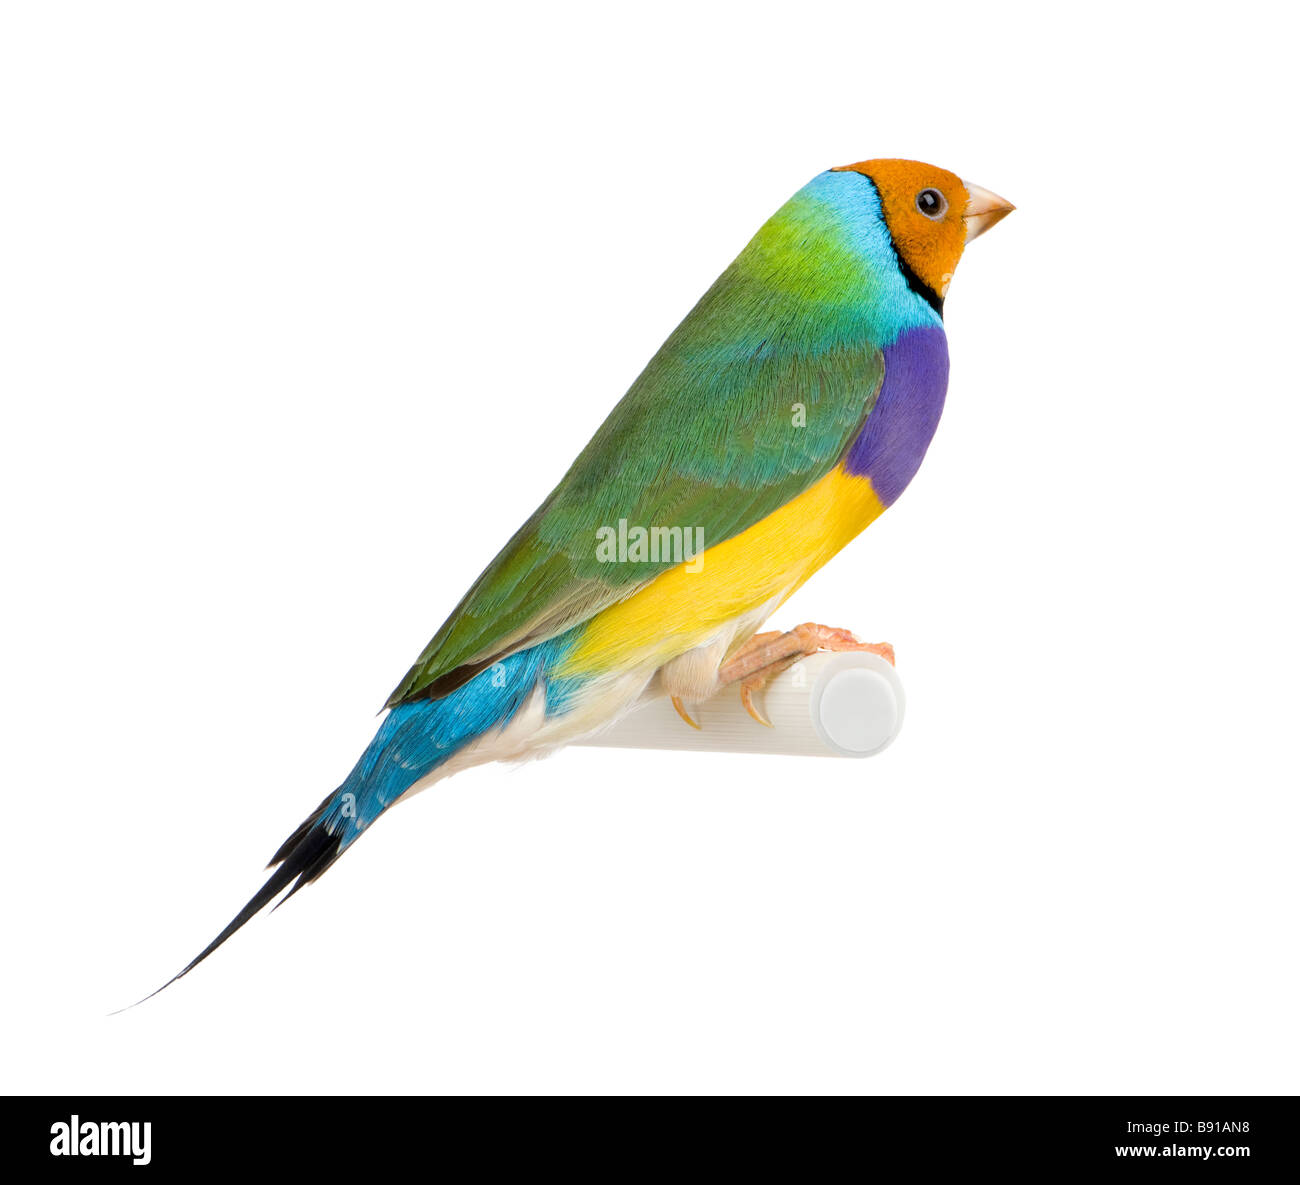 Gouldian Finch Erythrura gouldiae in front of a white background - Stock Image